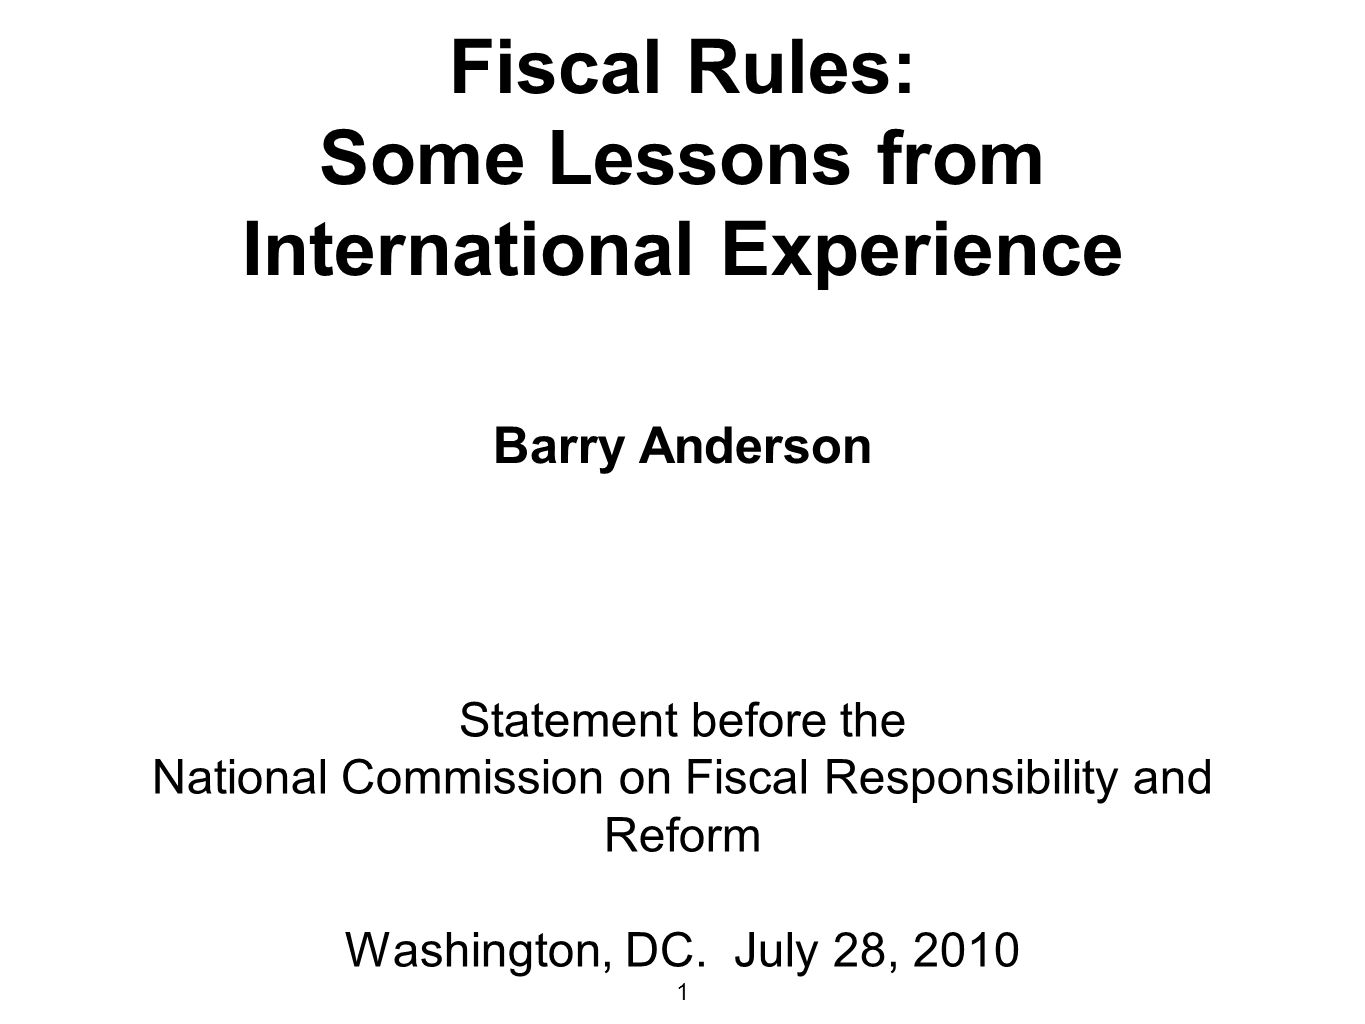 National Commission on Fiscal Responsibility and Reform